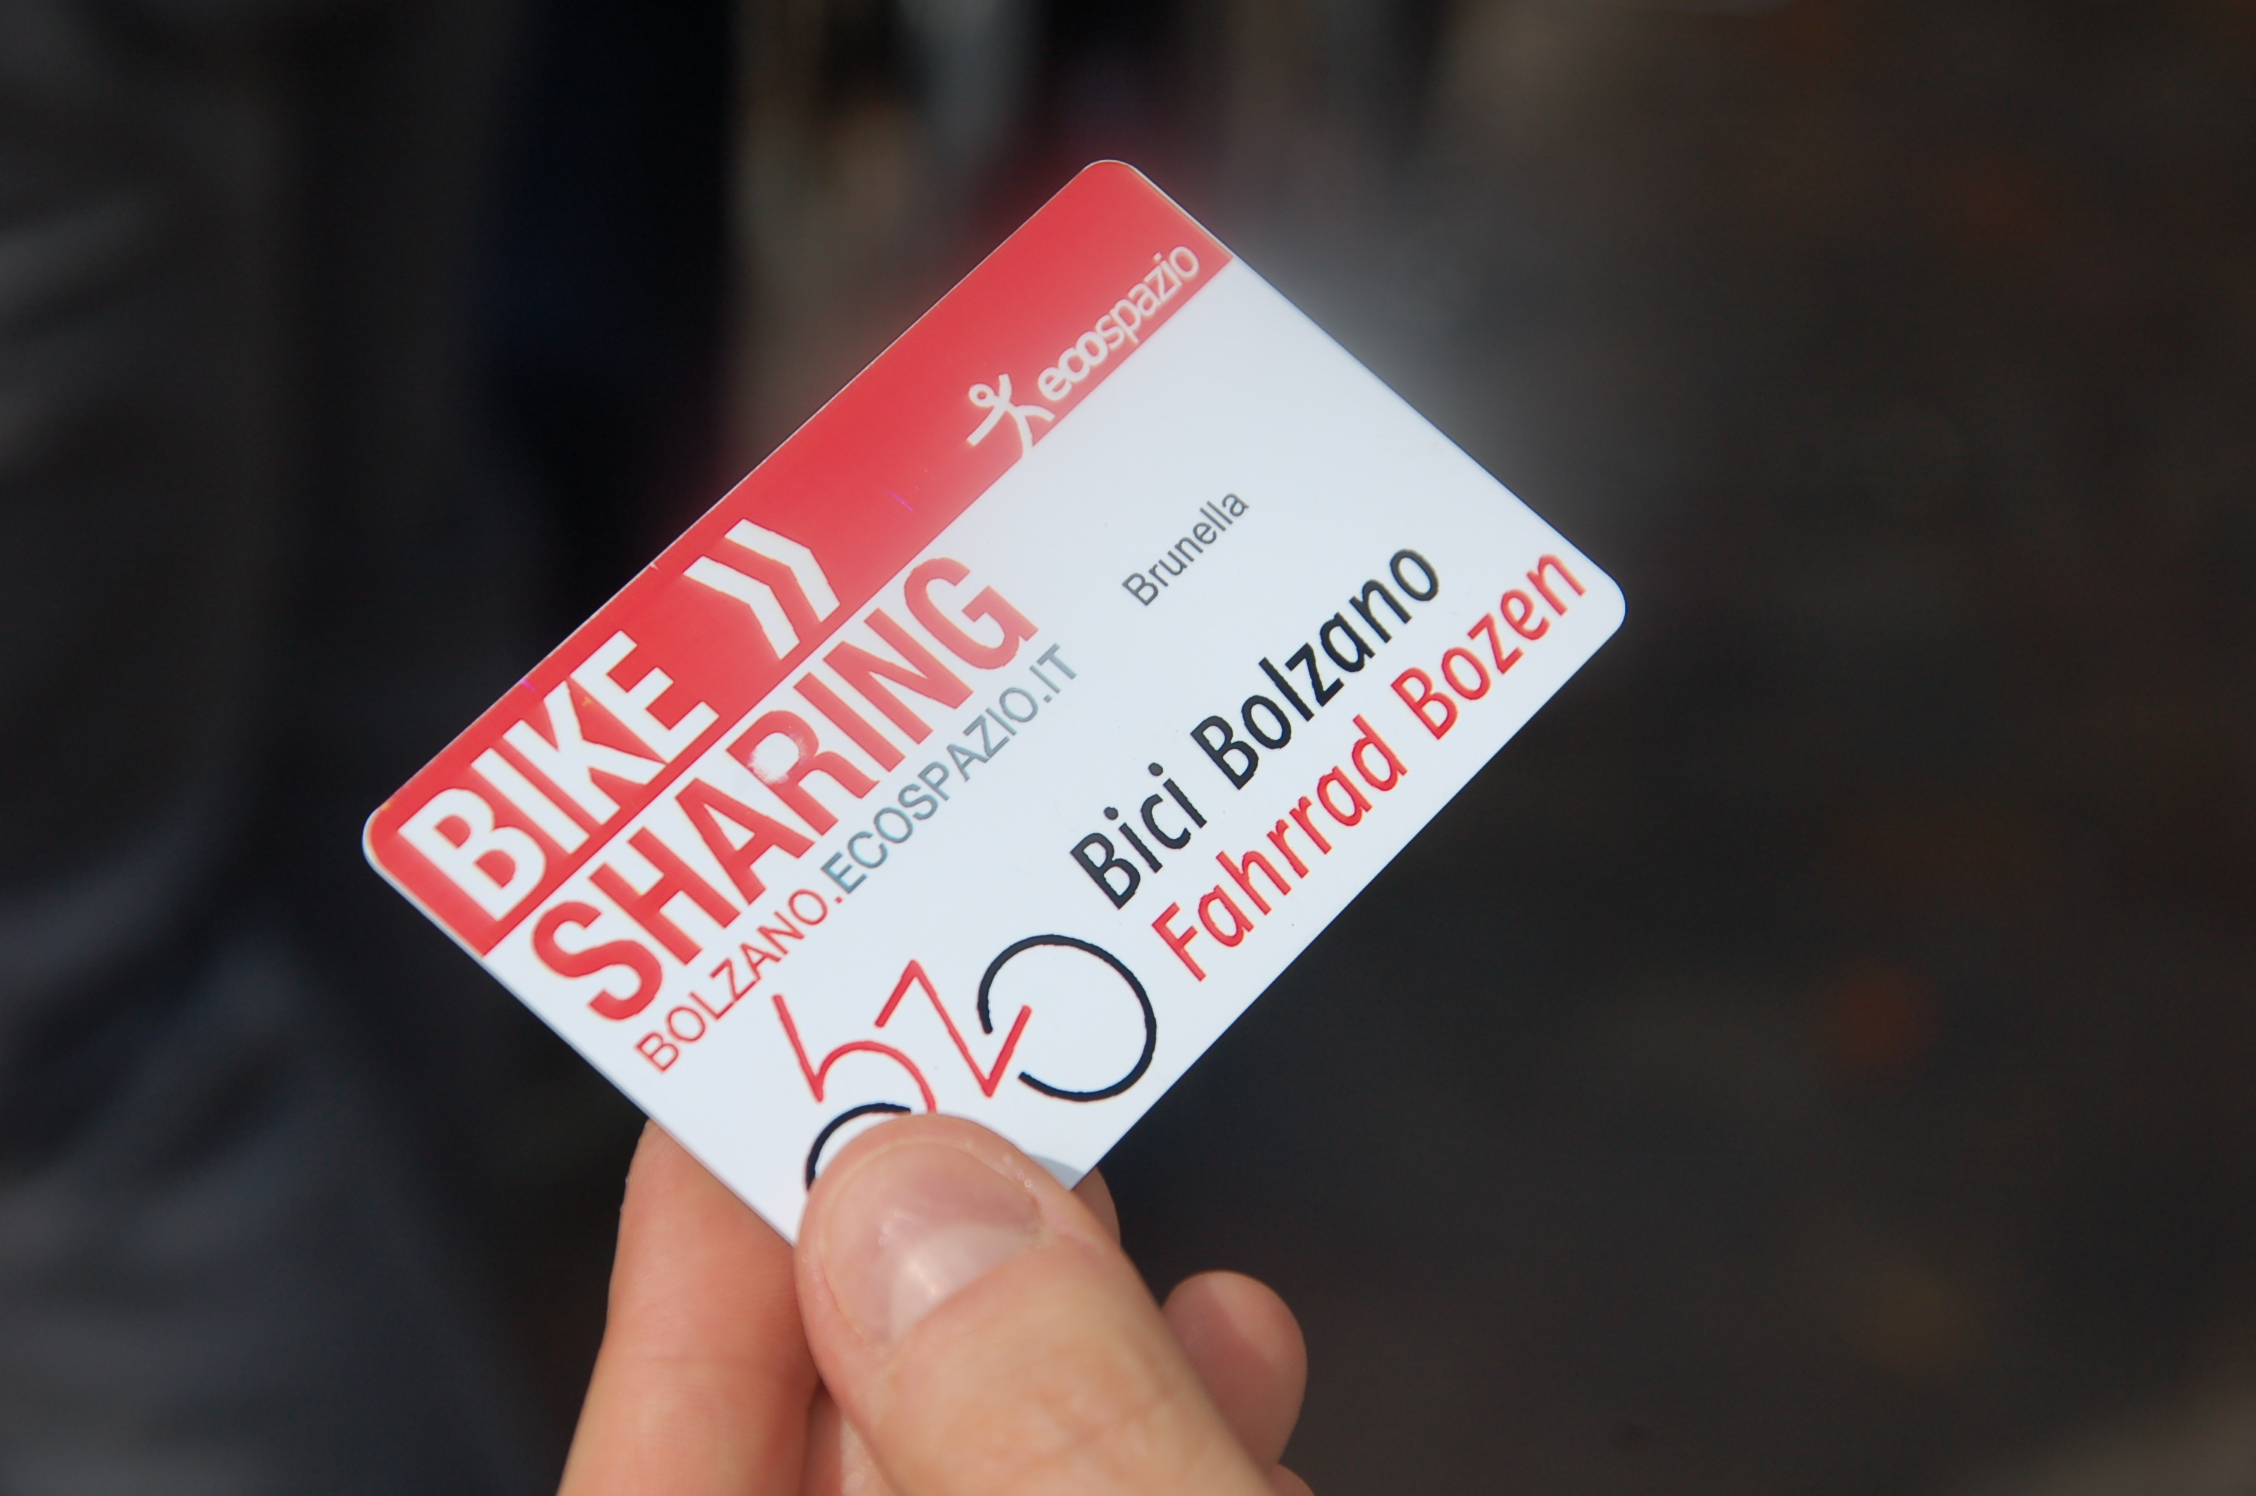 Bike-Sharing Card (Bild: jpg, 1,208 Kilobyte, 2256 x 1496 pixel)